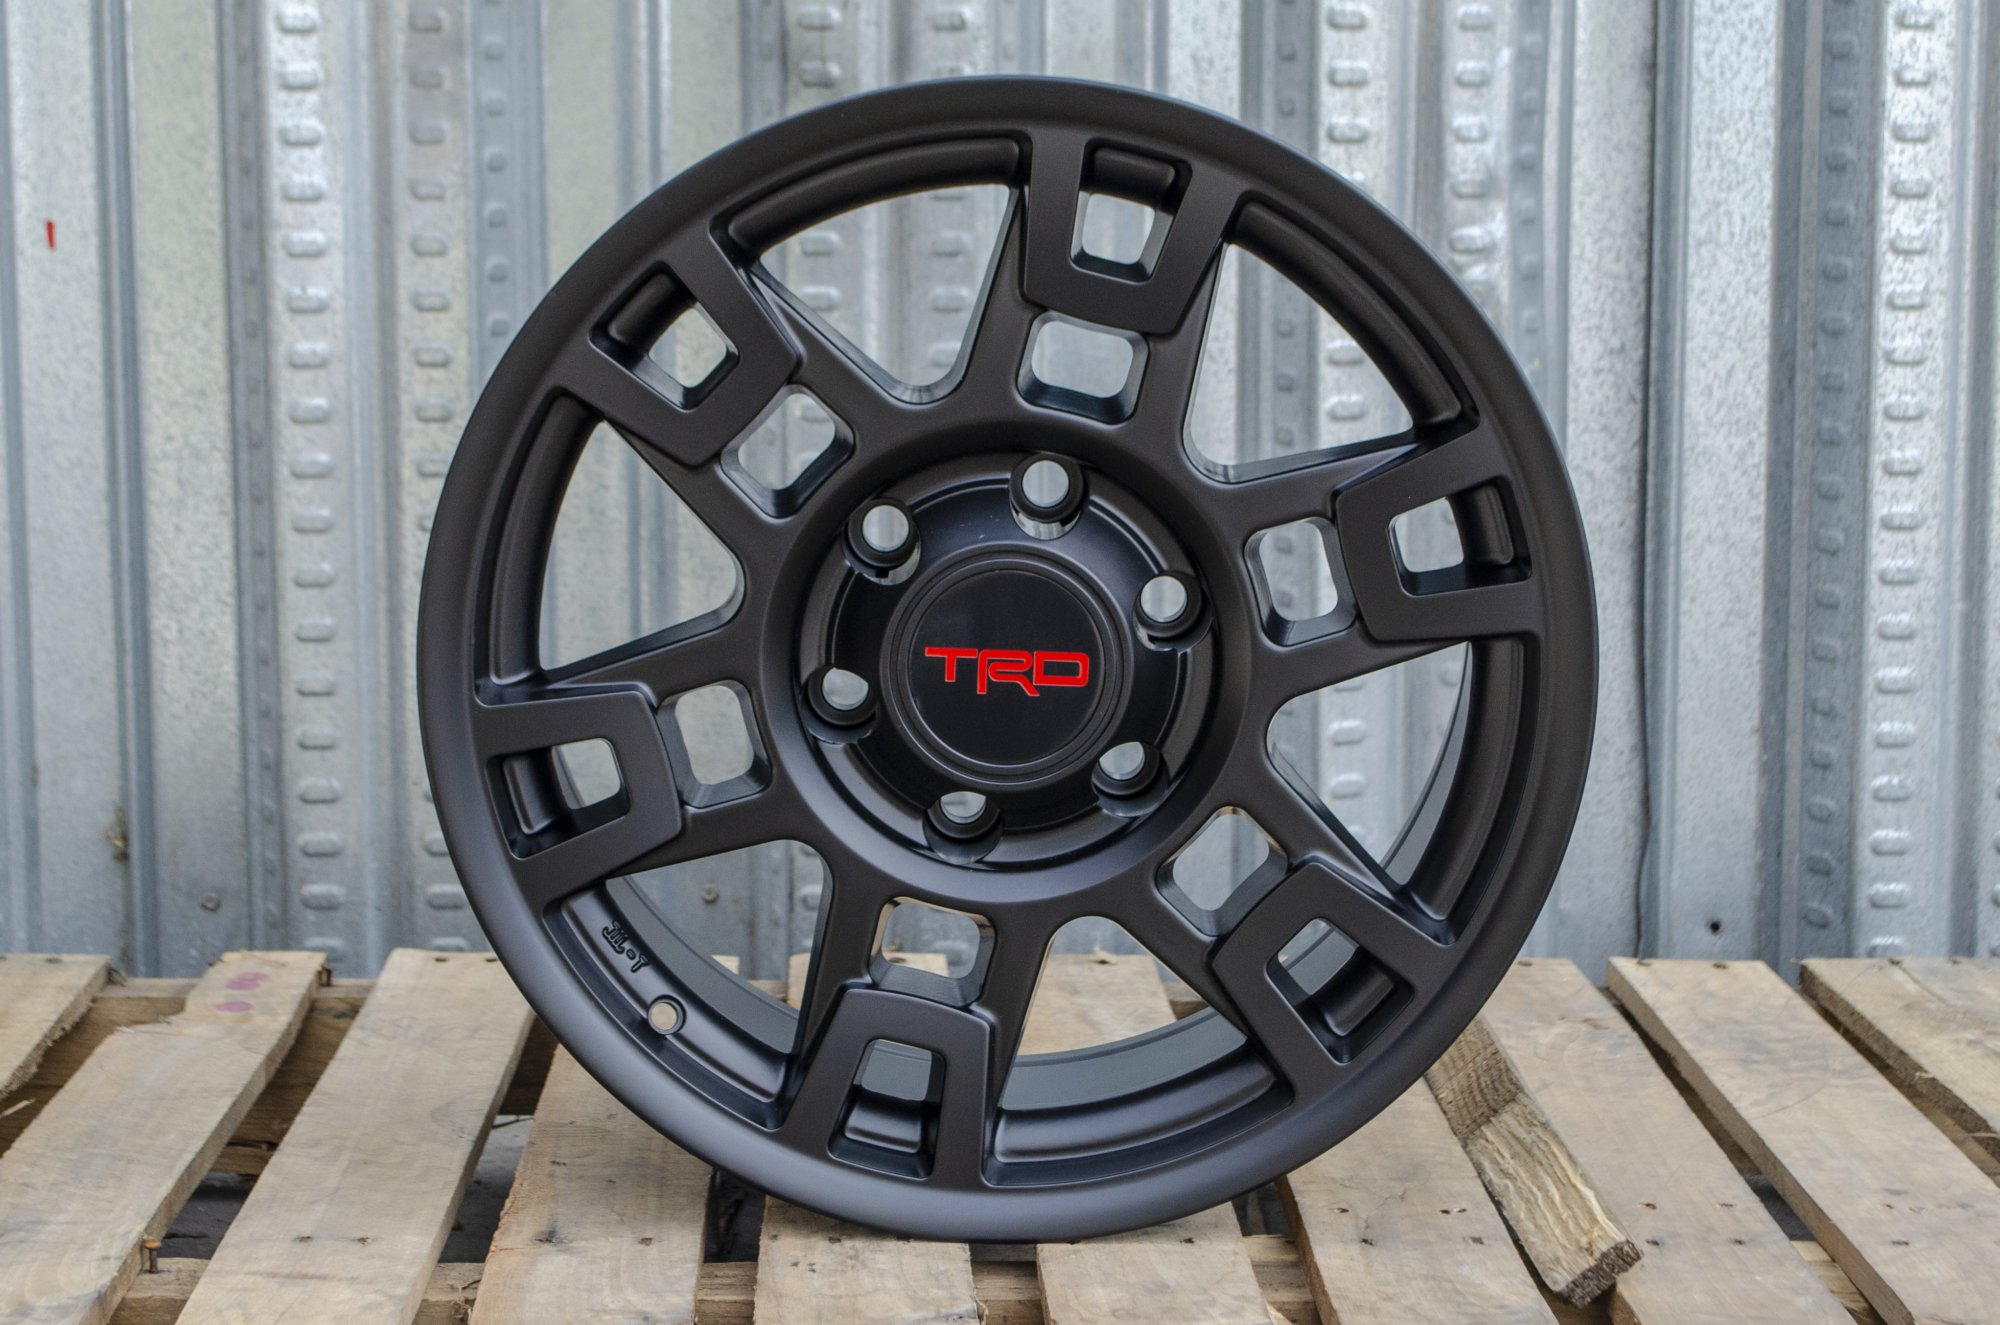 Alphasone Replica Wheels - Toyota TR1: Matte Black